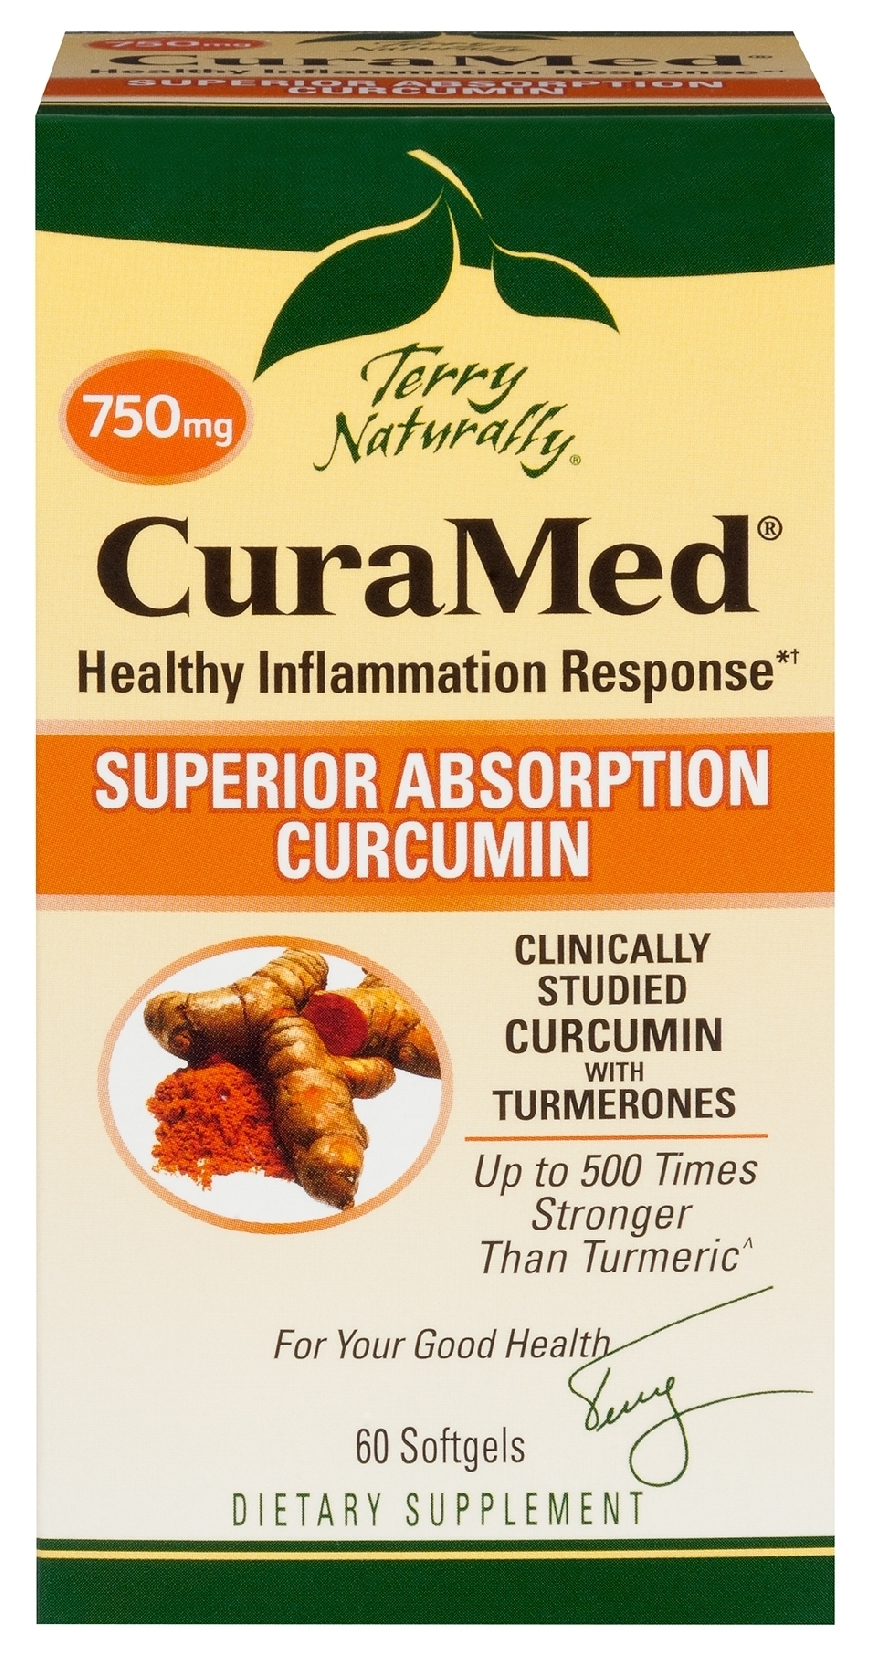 Terry Naturally CuraMed 750 mg 60 sgels by EuroPharma